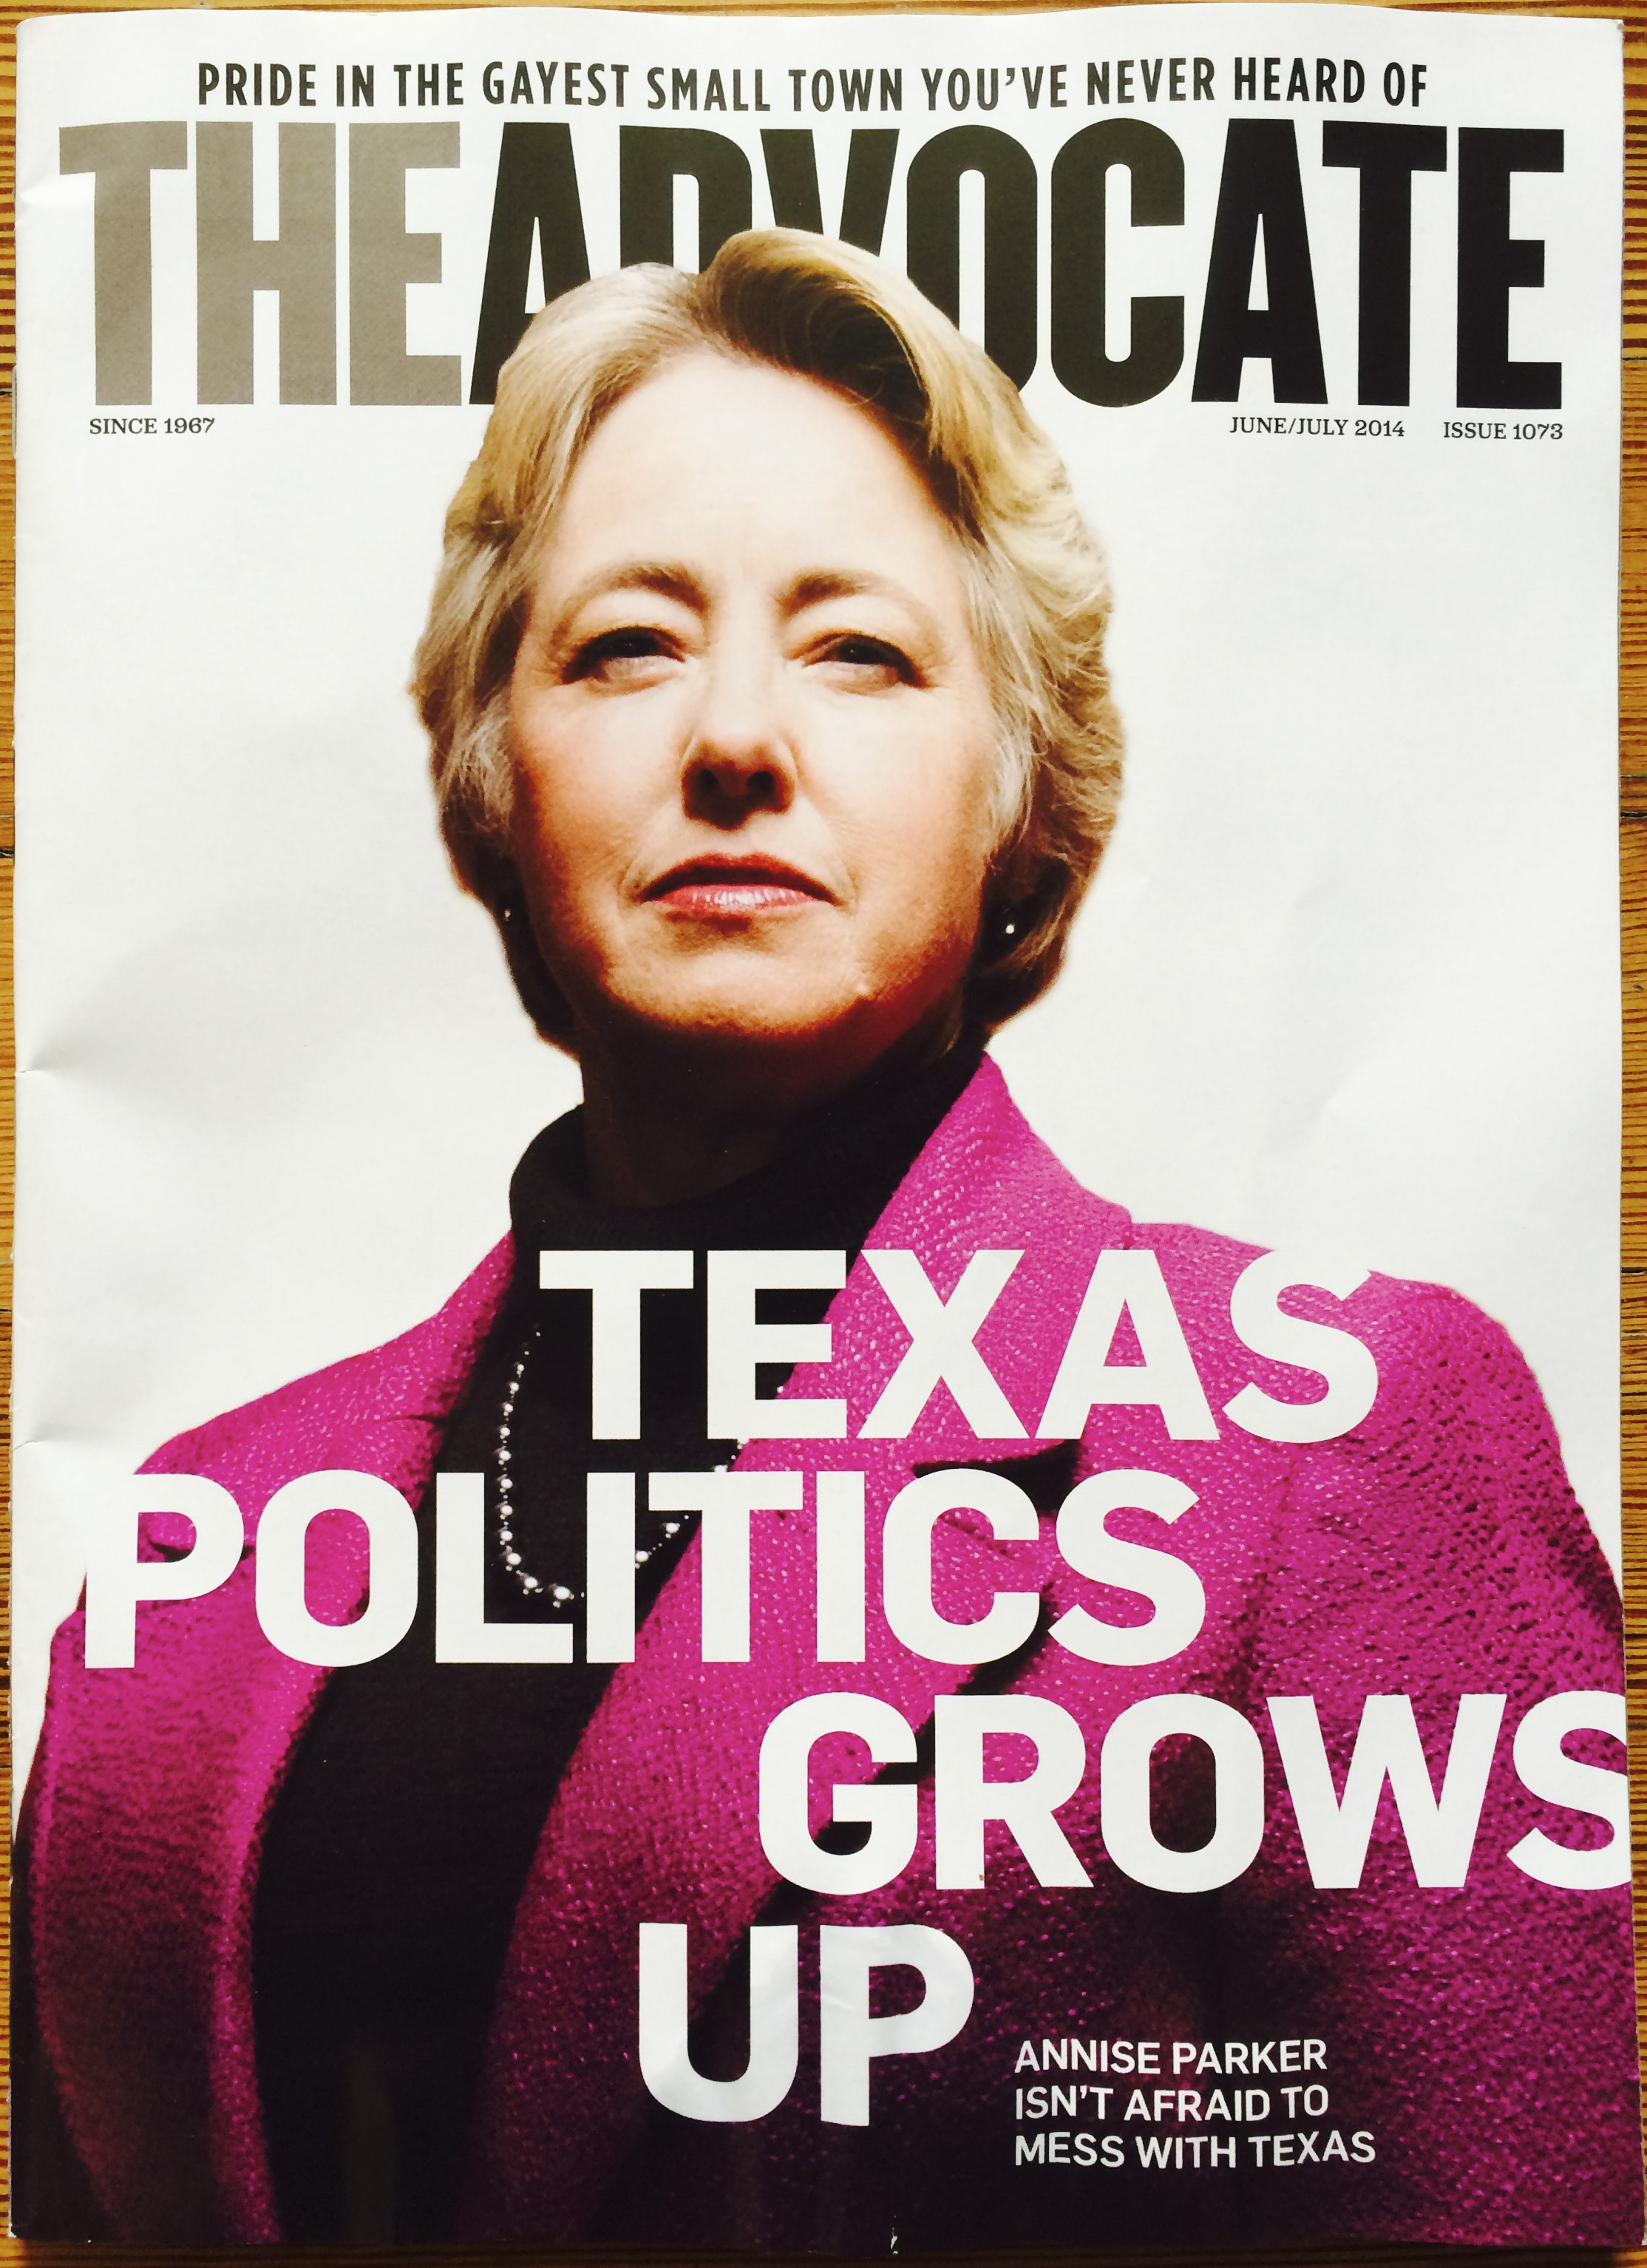 20140528_annise_parker_the_advocate_0001.JPG